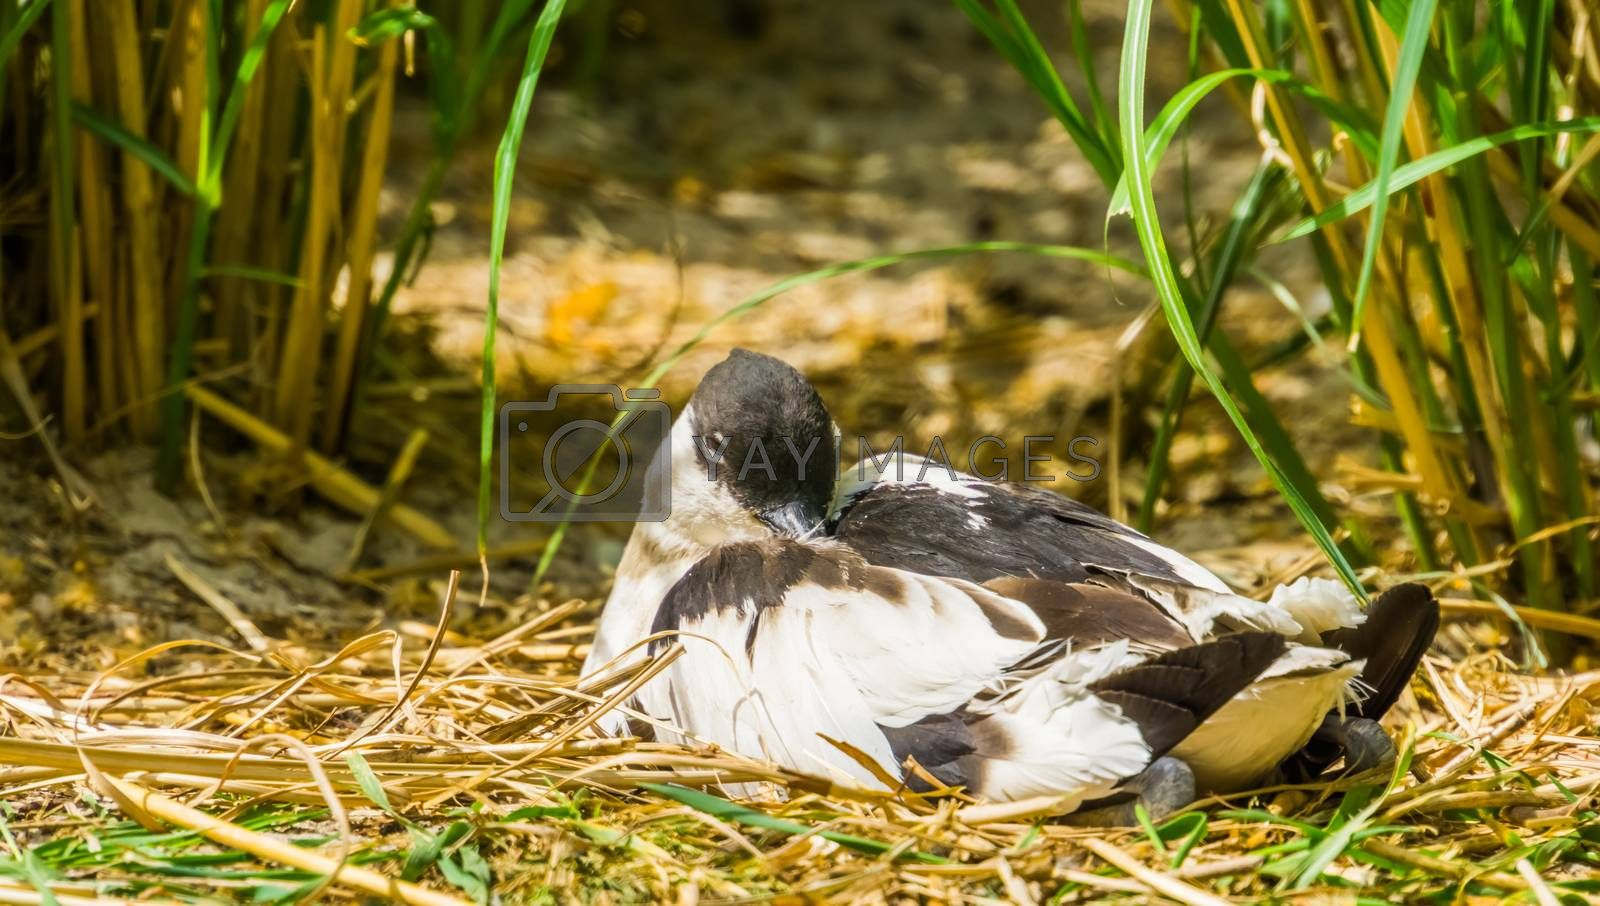 closeup of a pied avocet sitting between some grass, wading bird from Eurasia